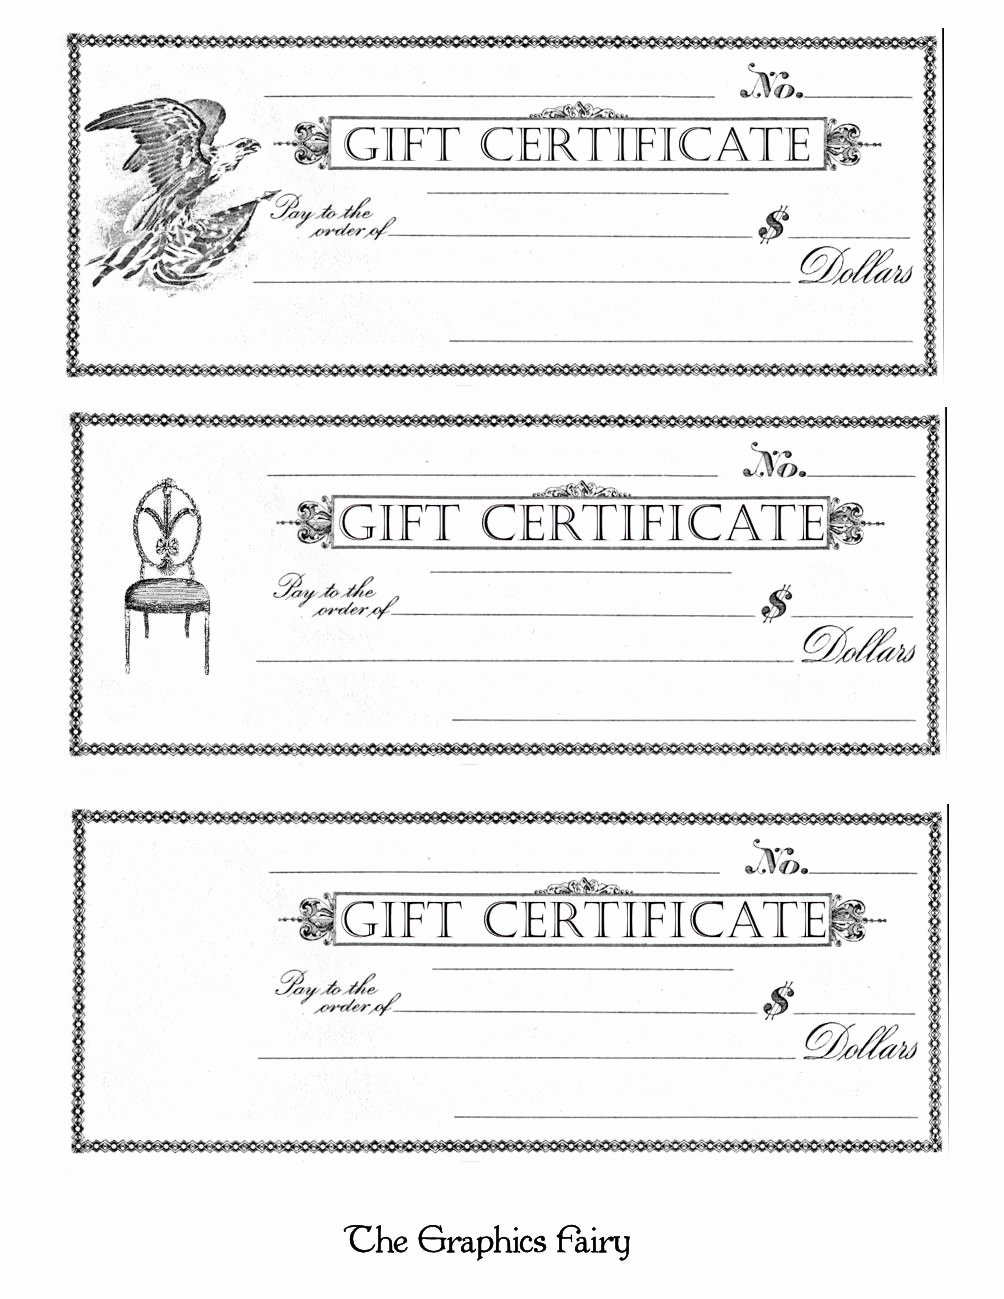 Free Printable Gift Certificates the Graphics Fairy